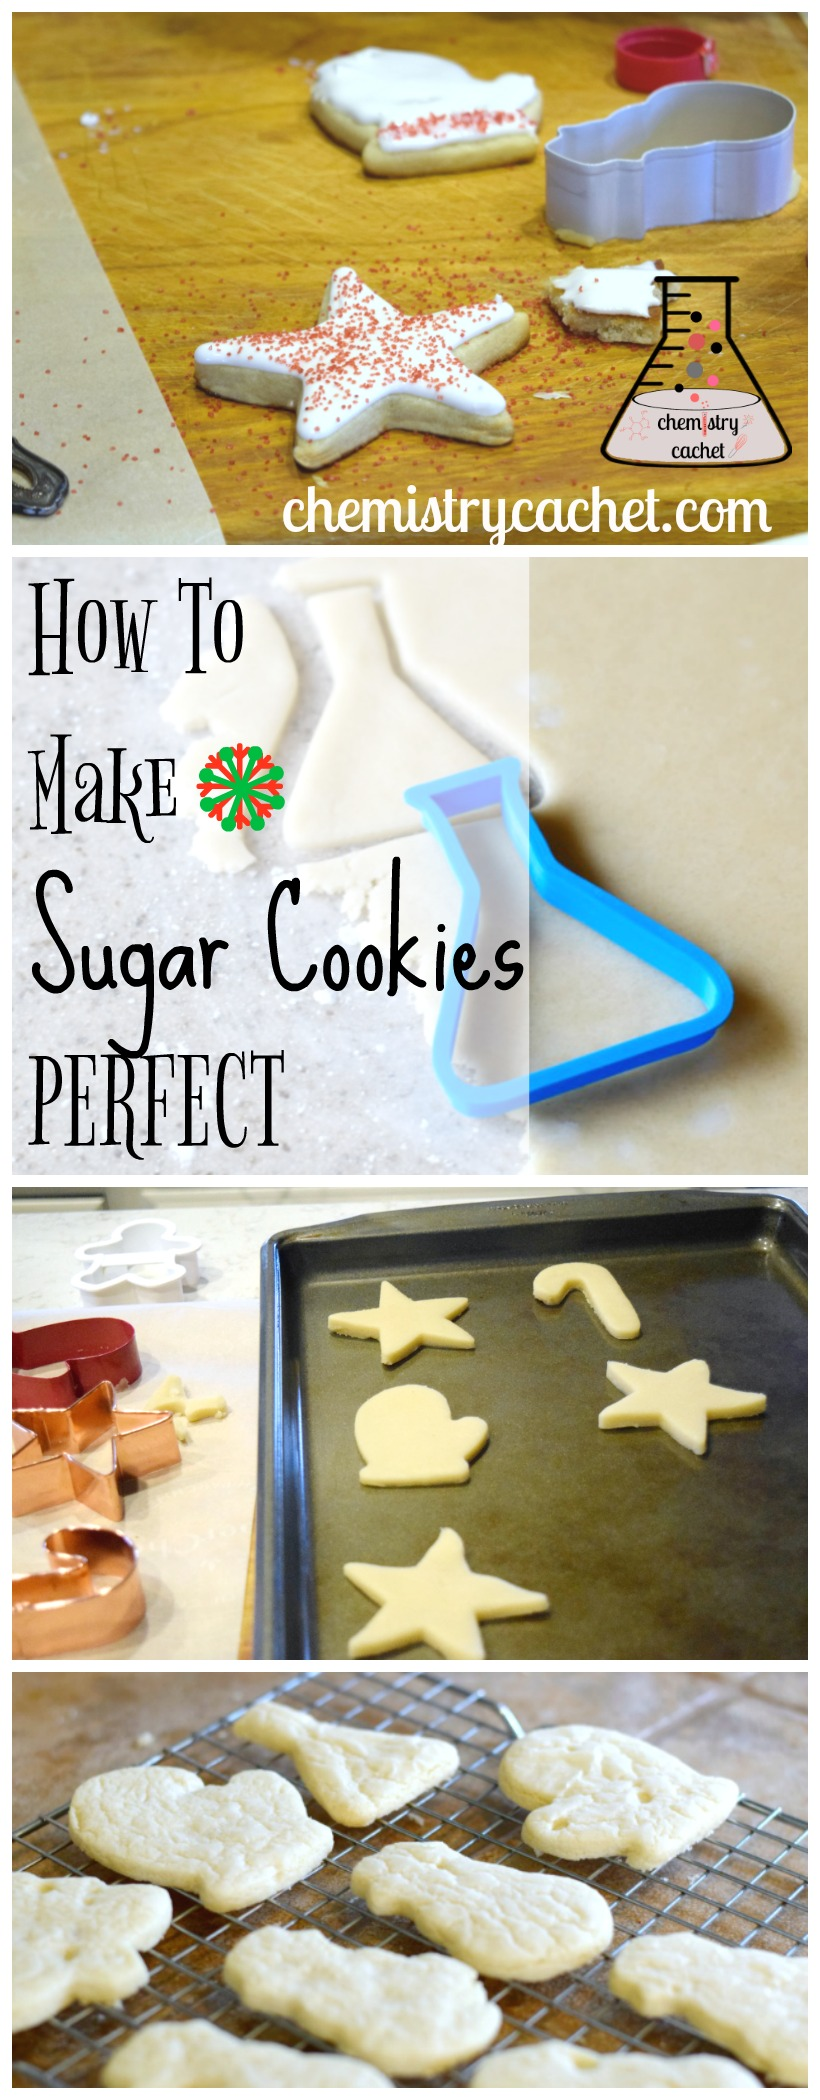 How to Make Sugar Cookies Turn out PERFECT everytime. Sugar cookie baking tips so they don't spread and always look great on chemistrycachet.com